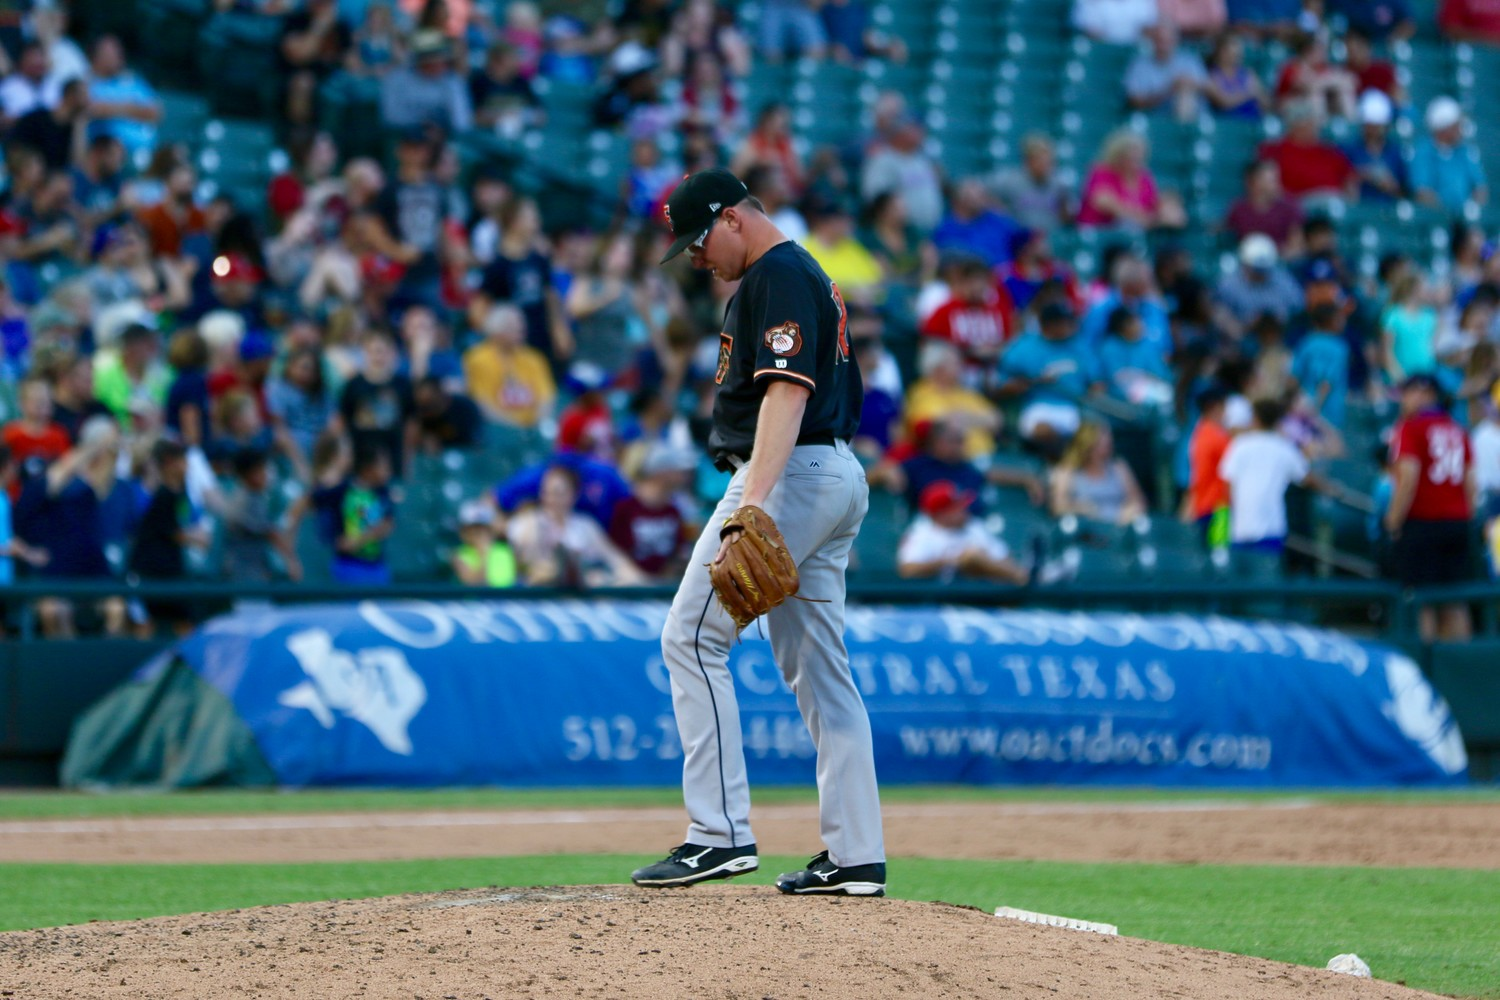 Trent Thornton took a no-hitter into the eighth inning at Dell Diamond Saturday night to help the Fresno Grizzlies take down Round Rock 6-1 in the first of a four-game series.